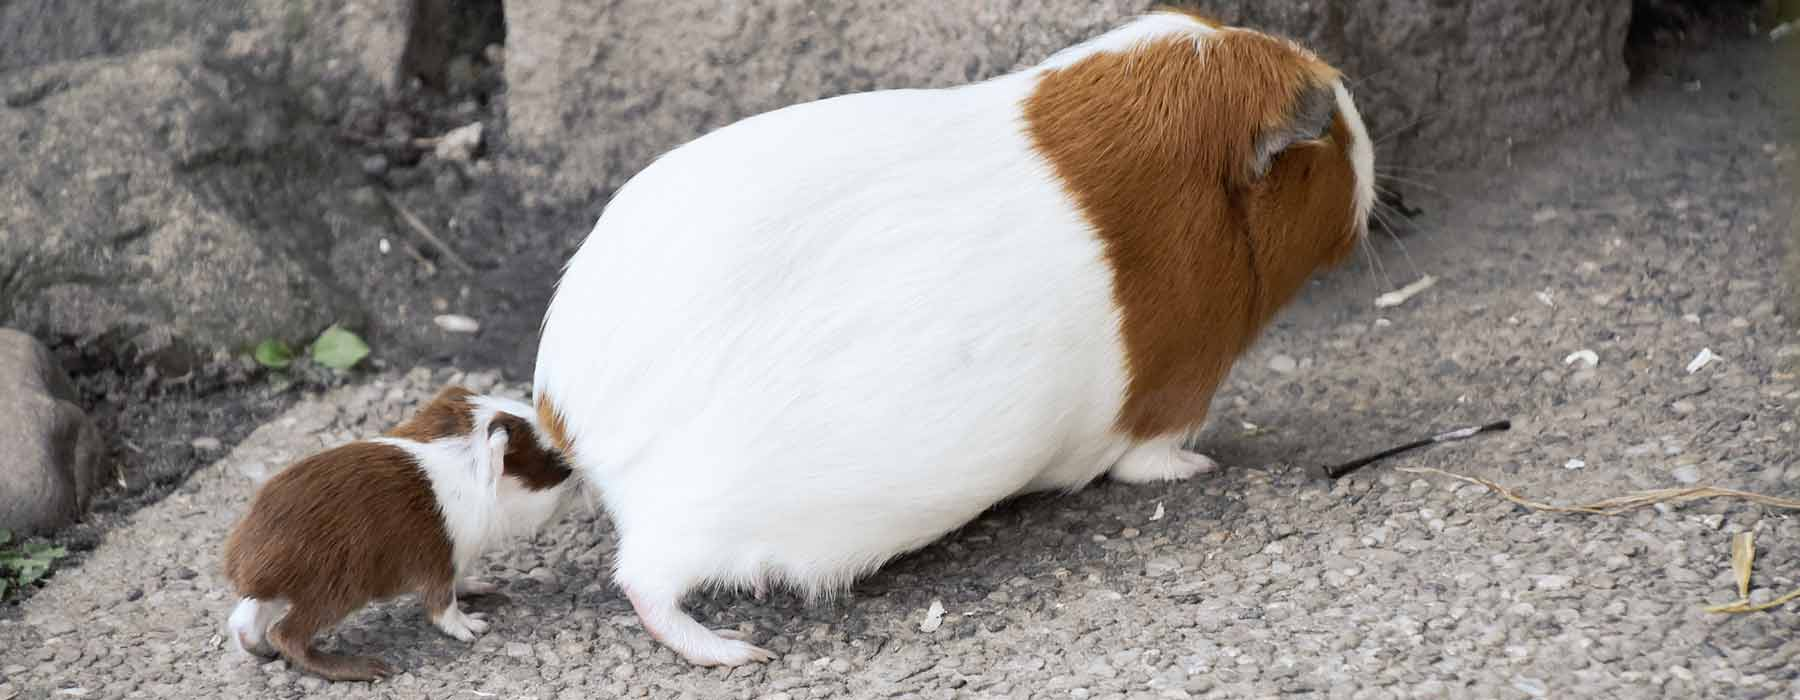 mother guinea pig being followed by a baby guinea pig